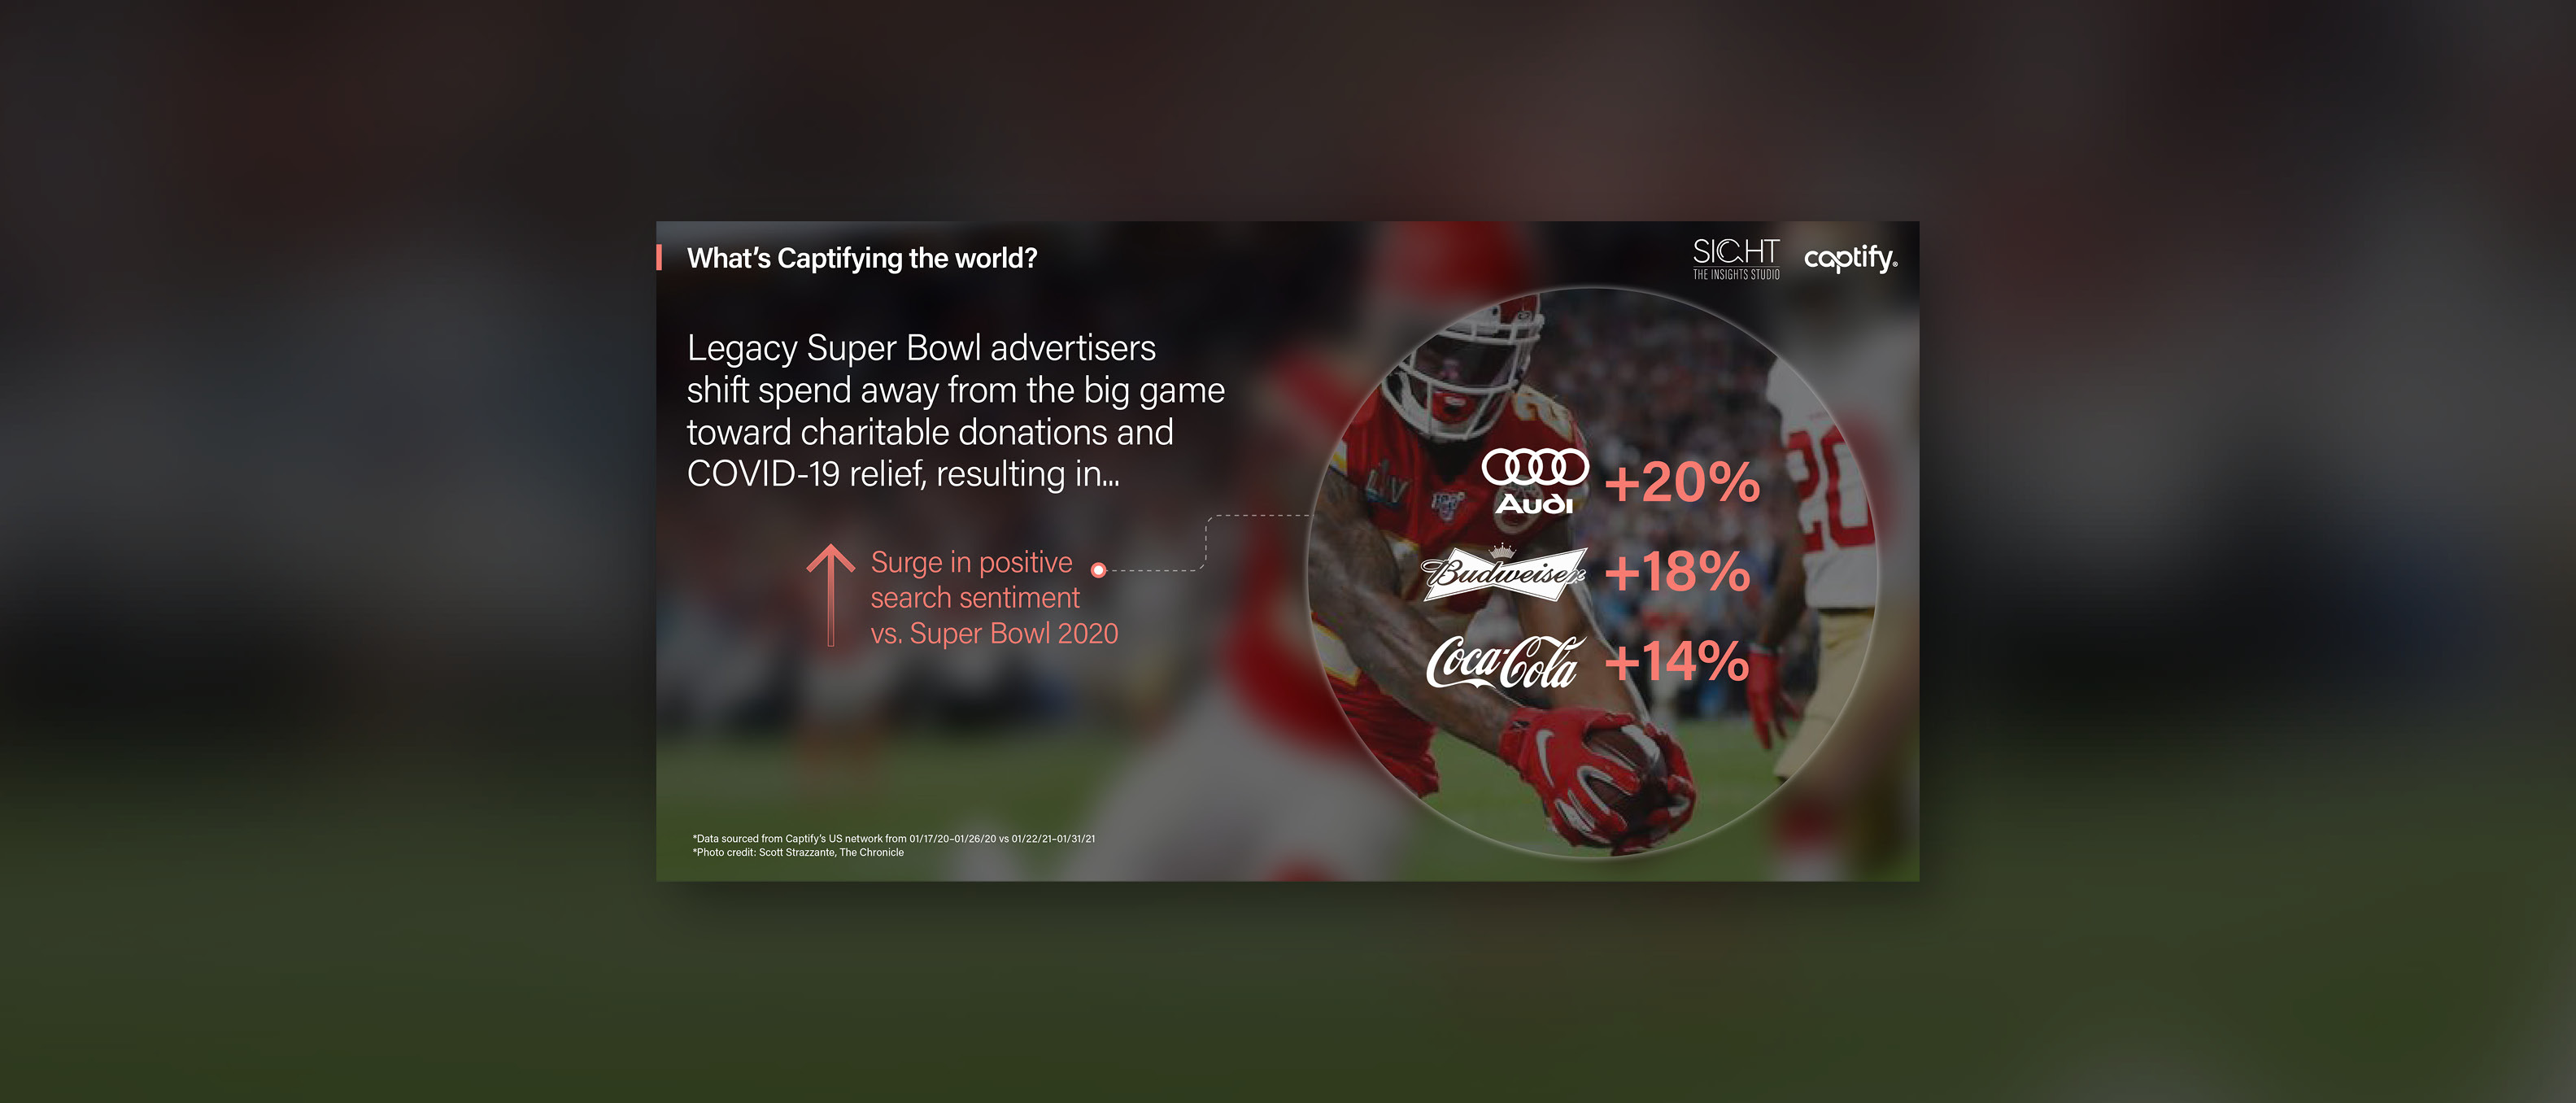 What's Captifying the world: Legacy Super Bowl advertisers shift spend away from the big game toward charitable donations and Covid-19 relief, resulting in a surge in positive search sentiment